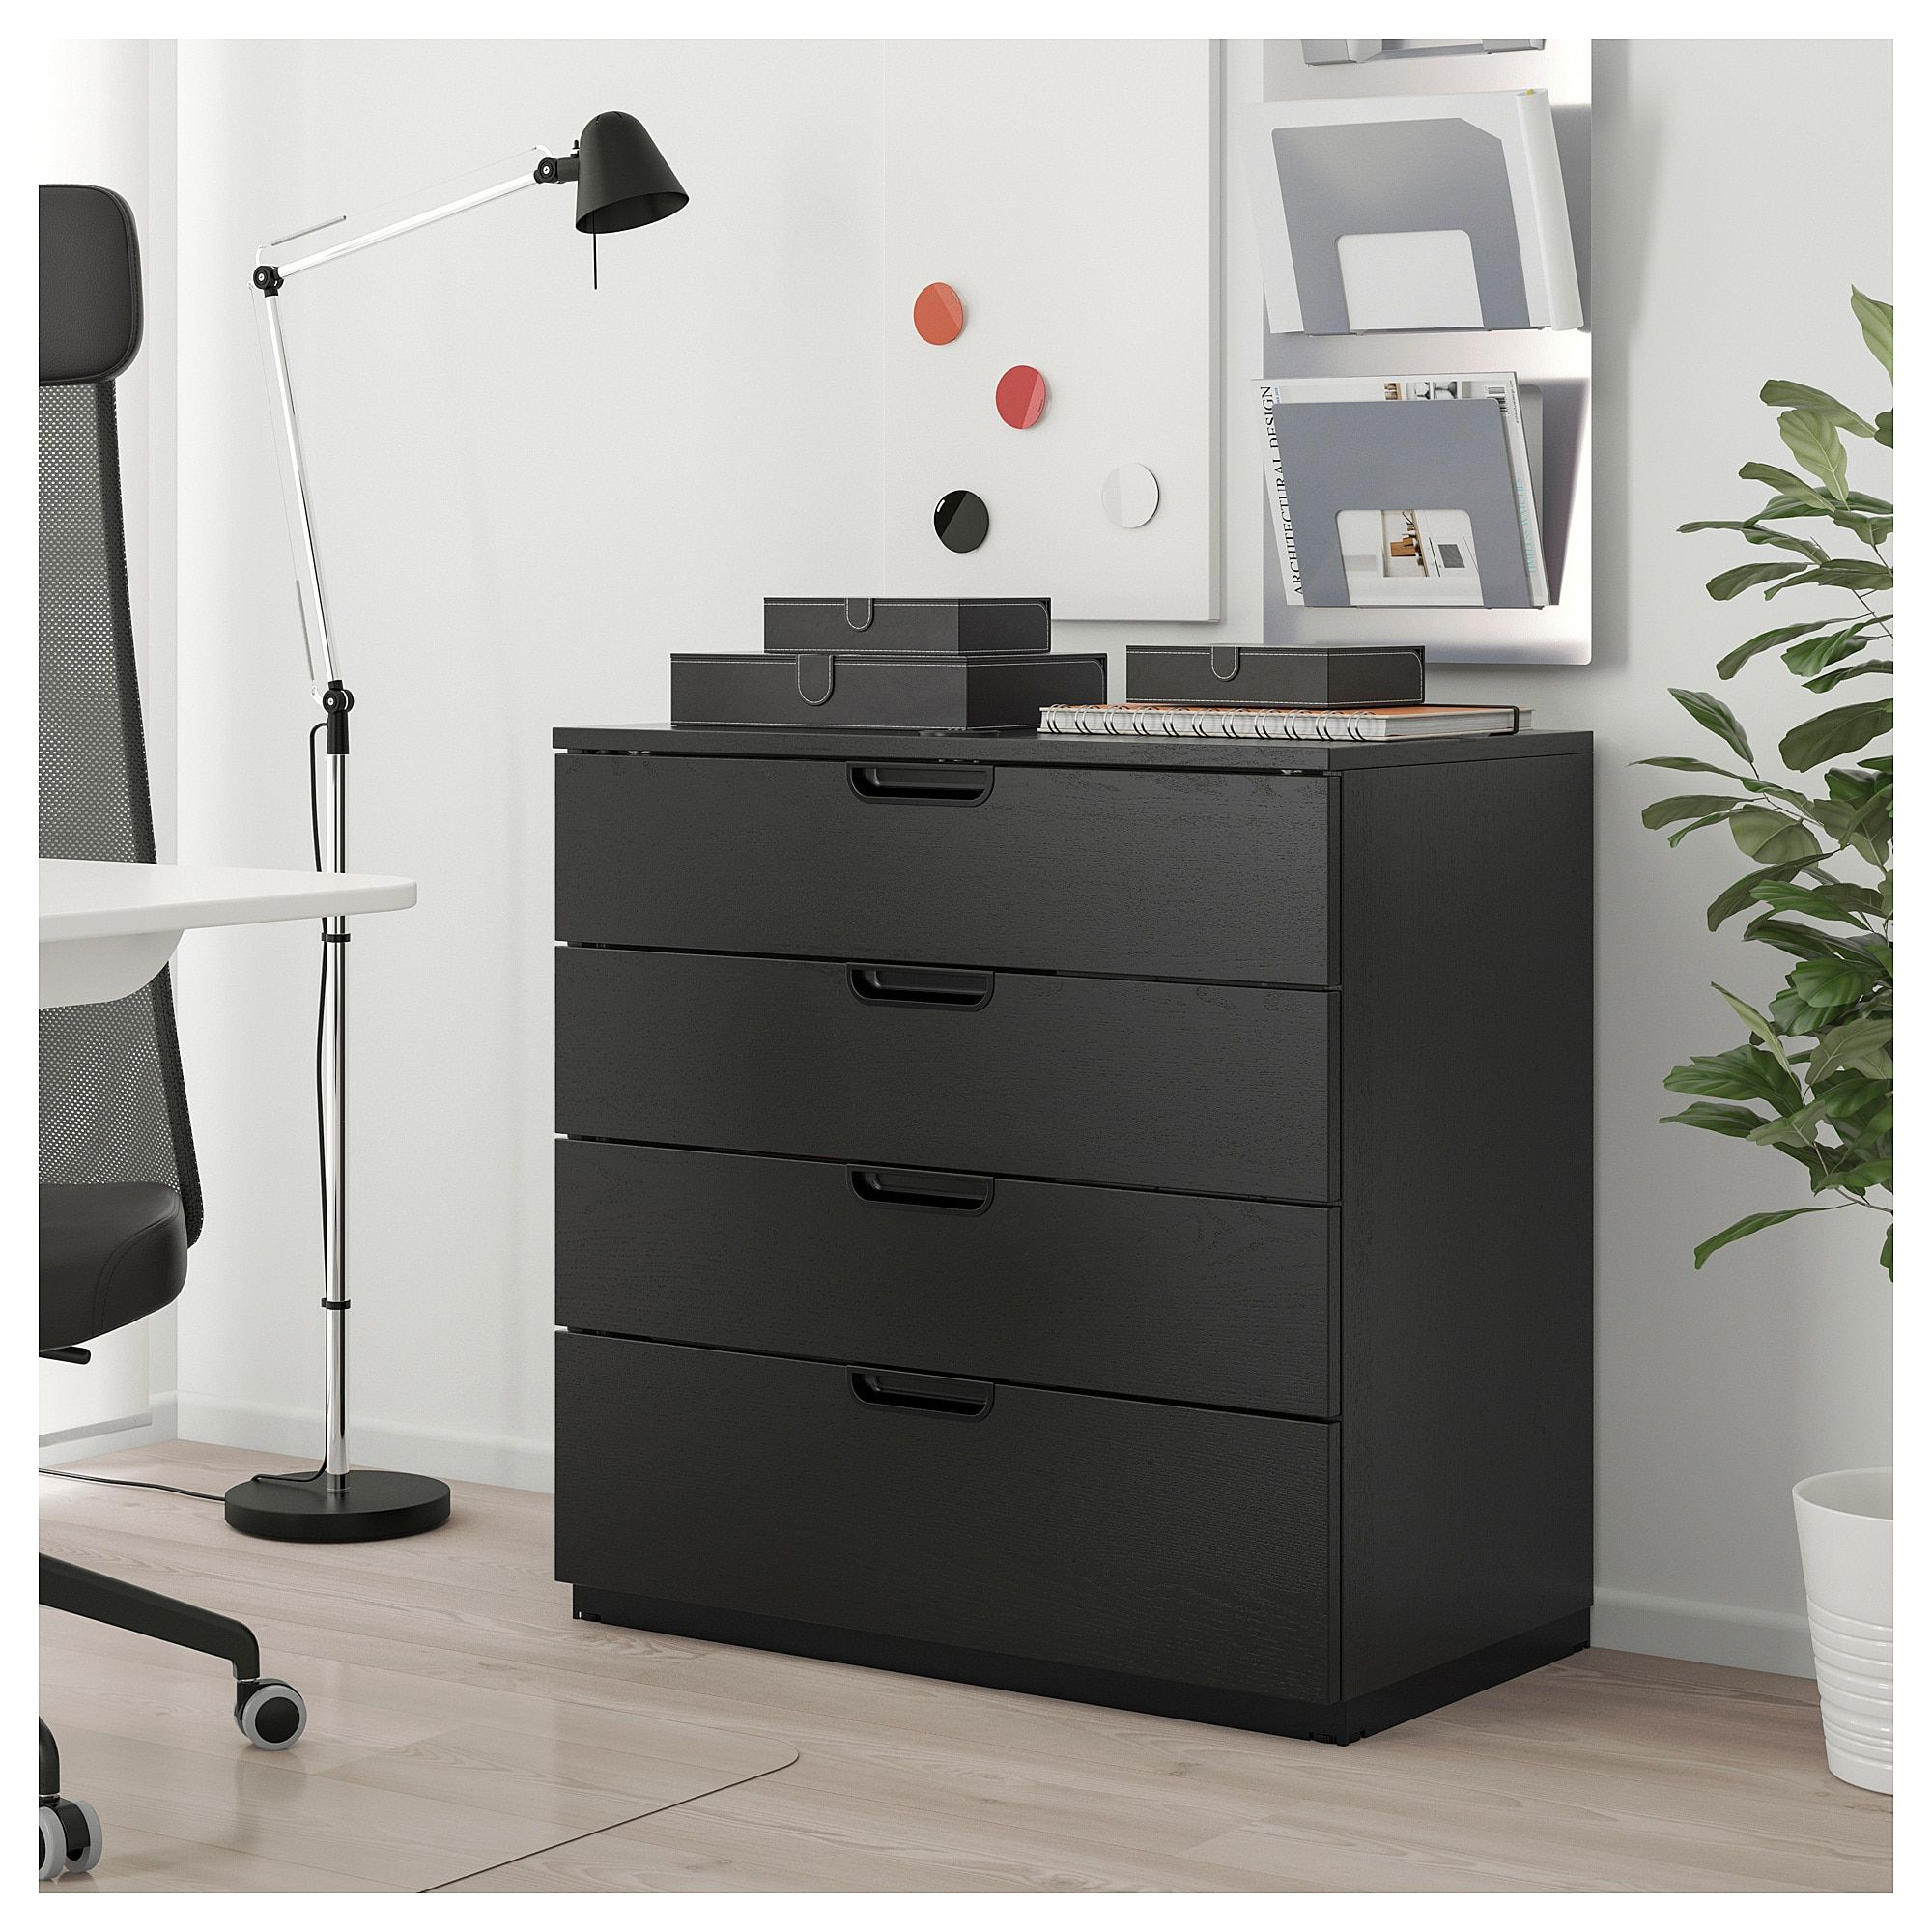 Galant Drawer Unit Black Stained Ash Veneer Ikea In 2020 Drawer Unit Ikea Galant Ikea